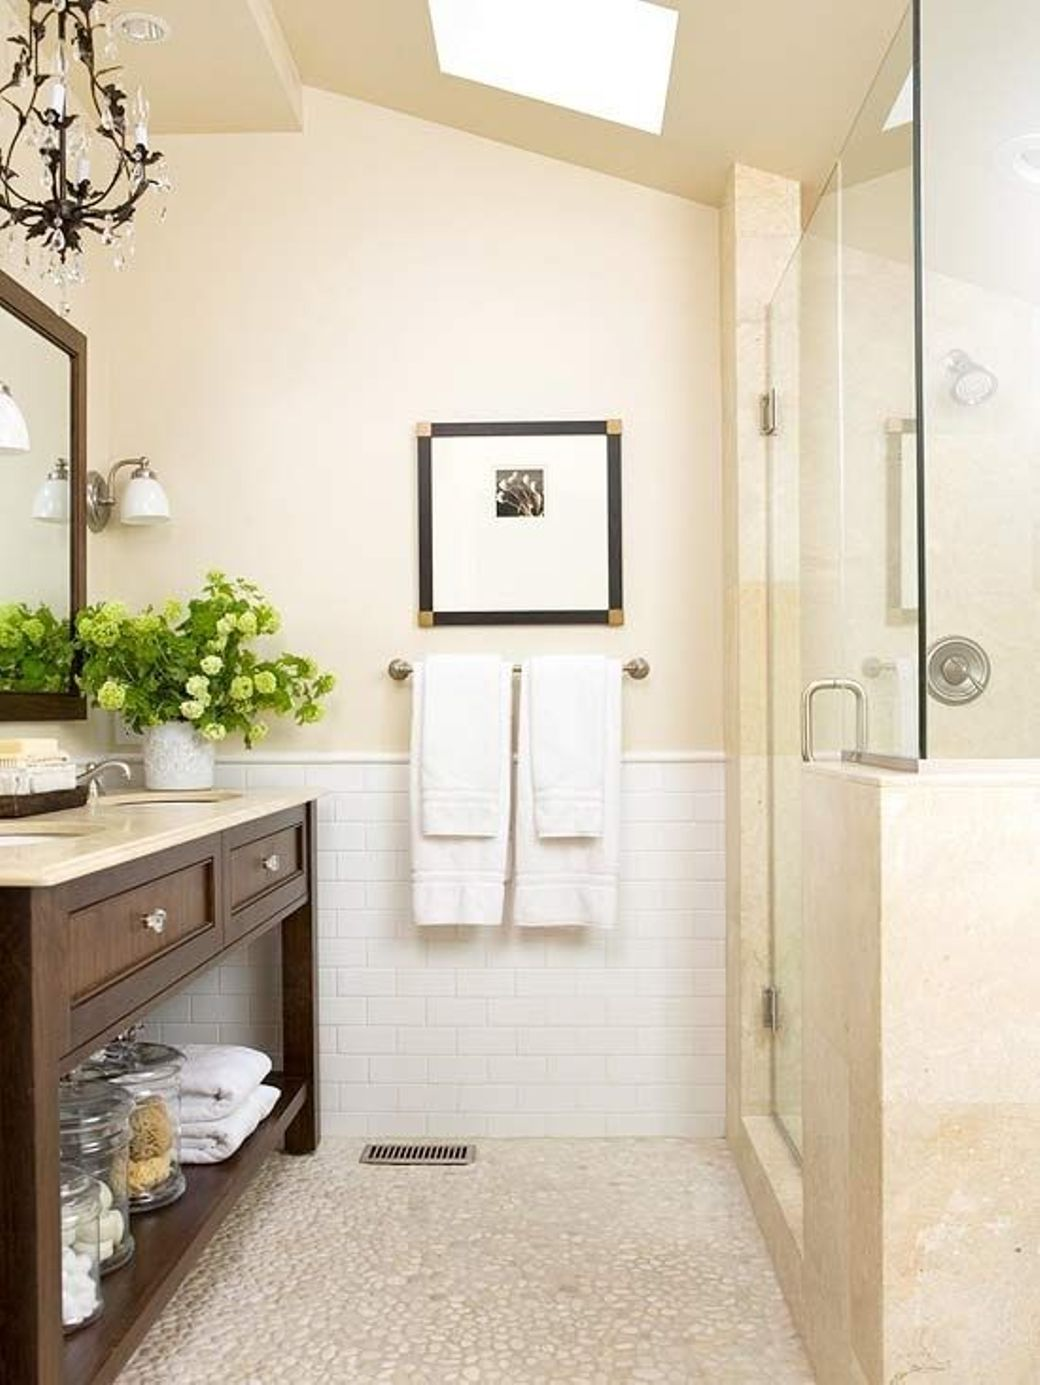 Bathroom  Small Bathroom Decorating Ideas  Small Bathroom Mesmerizing Door Ideas For Small Bathroom Decorating Design